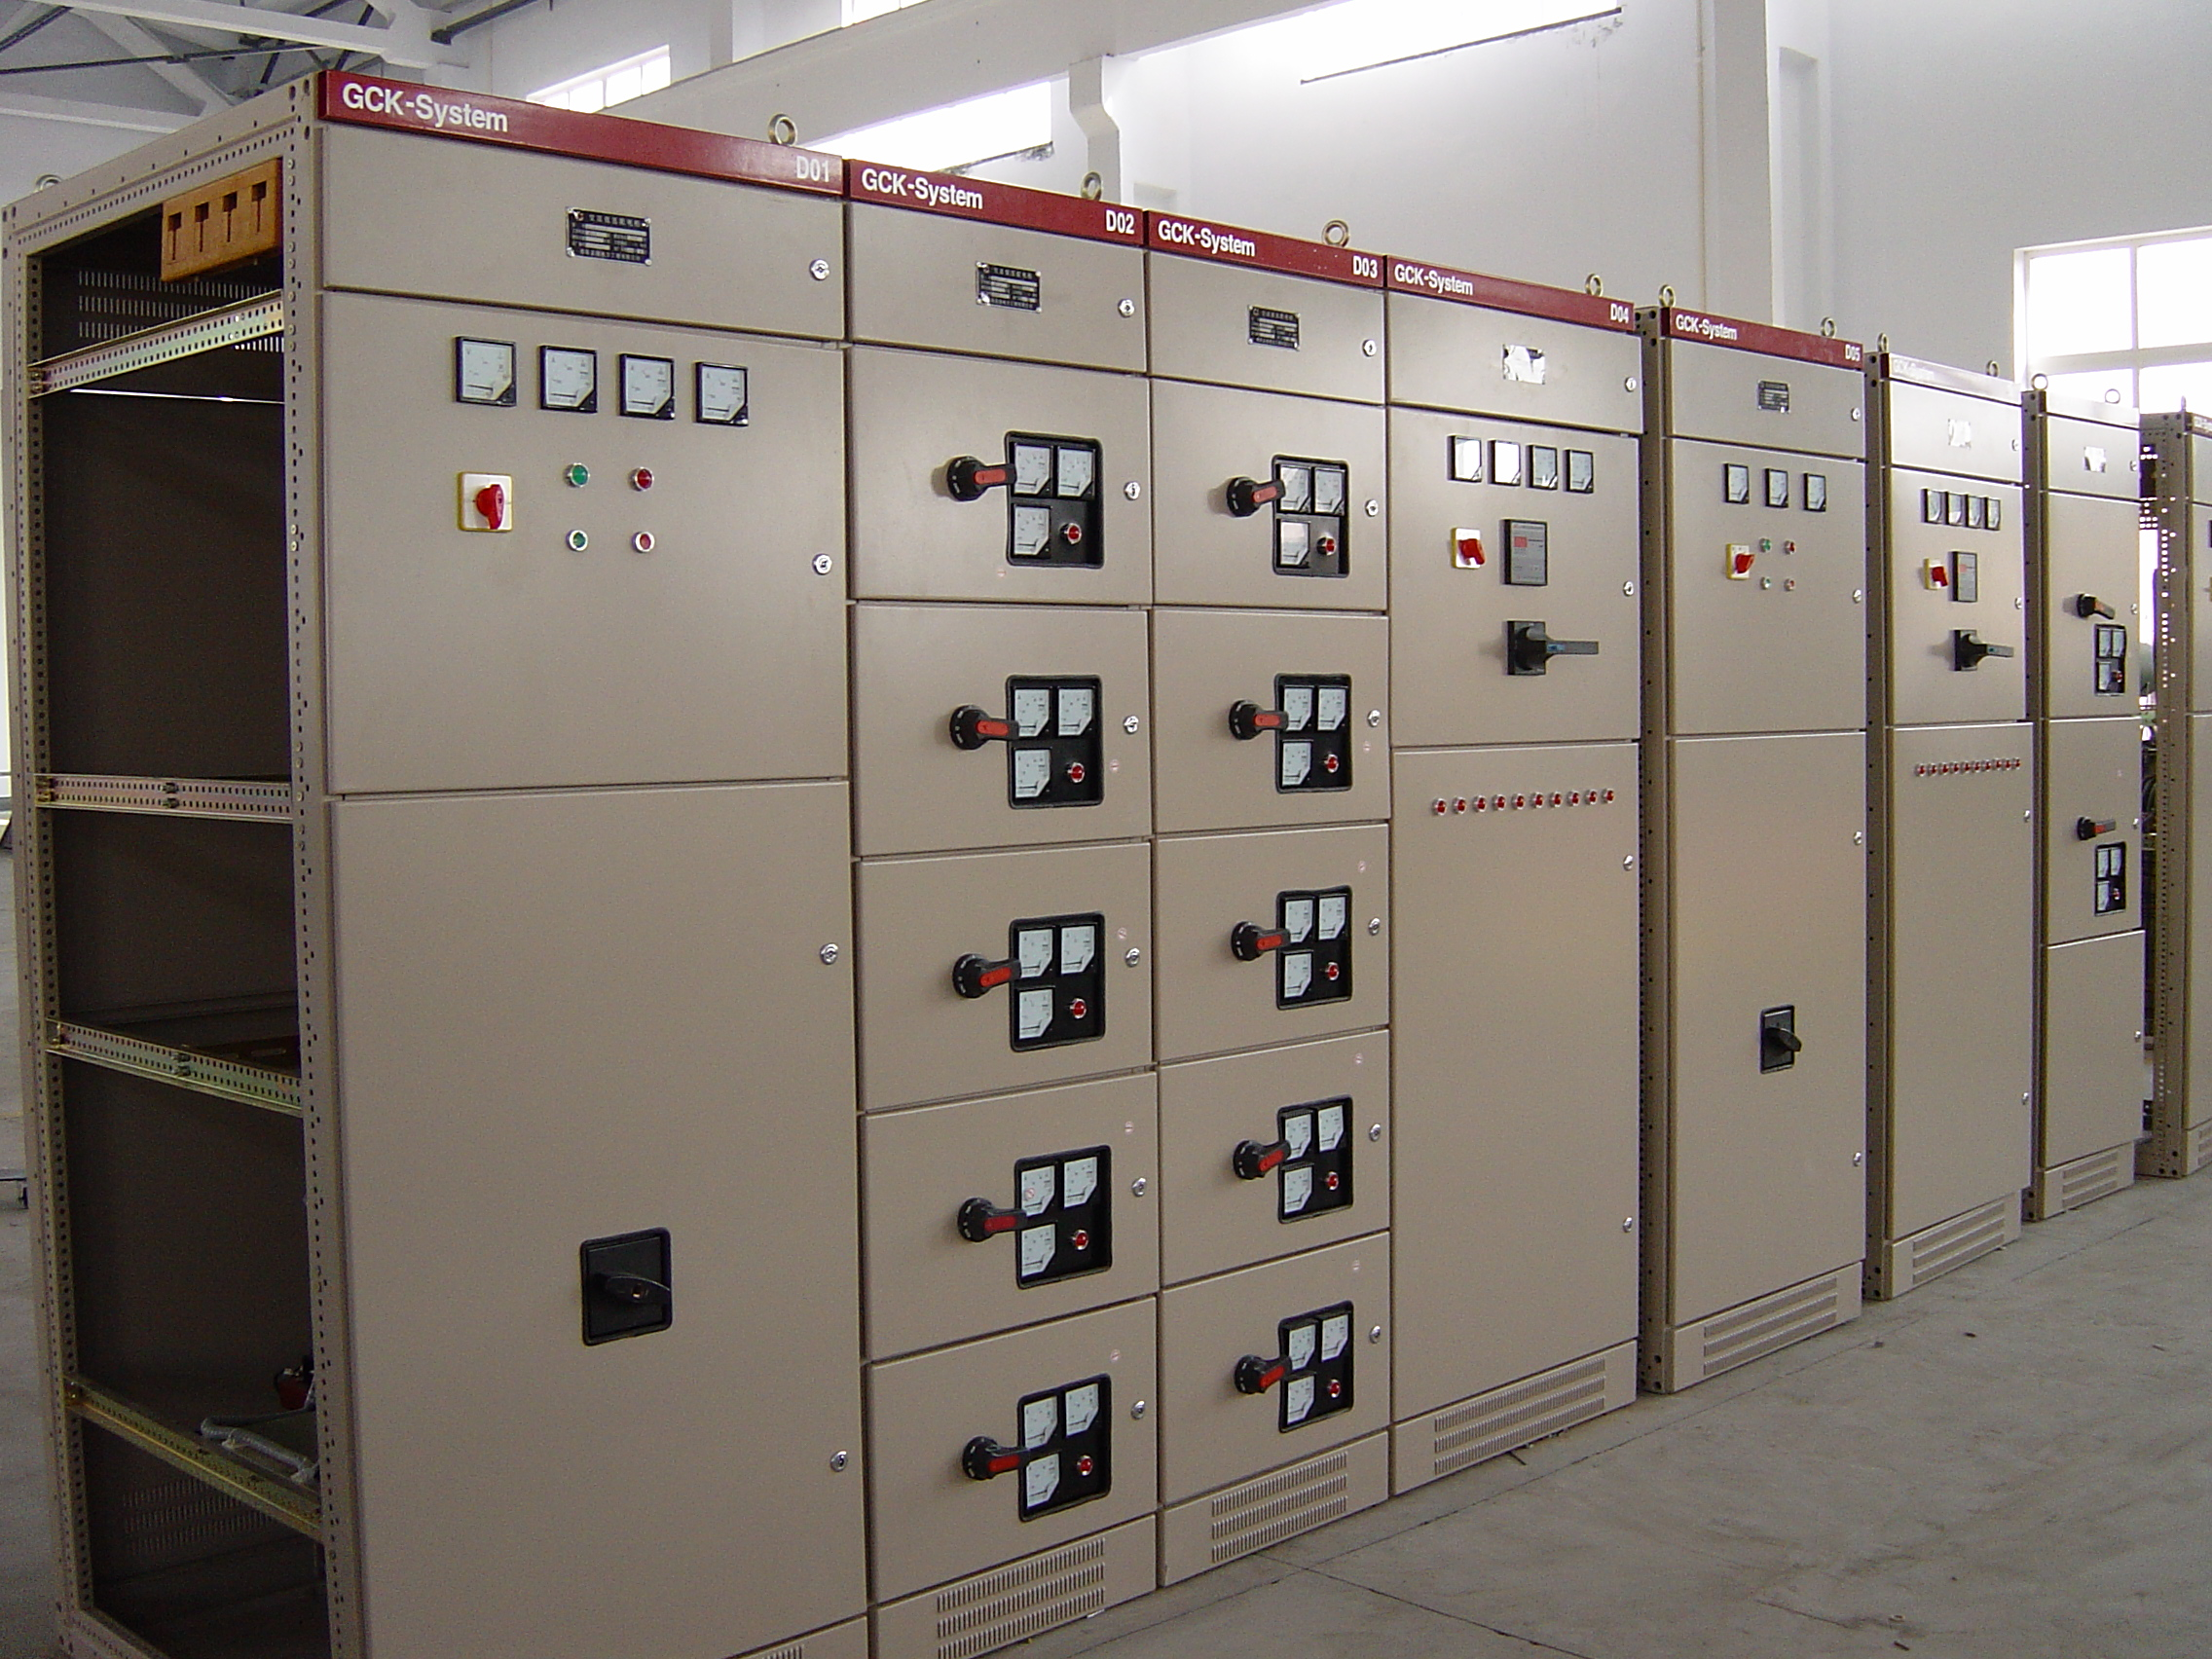 LV switchgear GCK